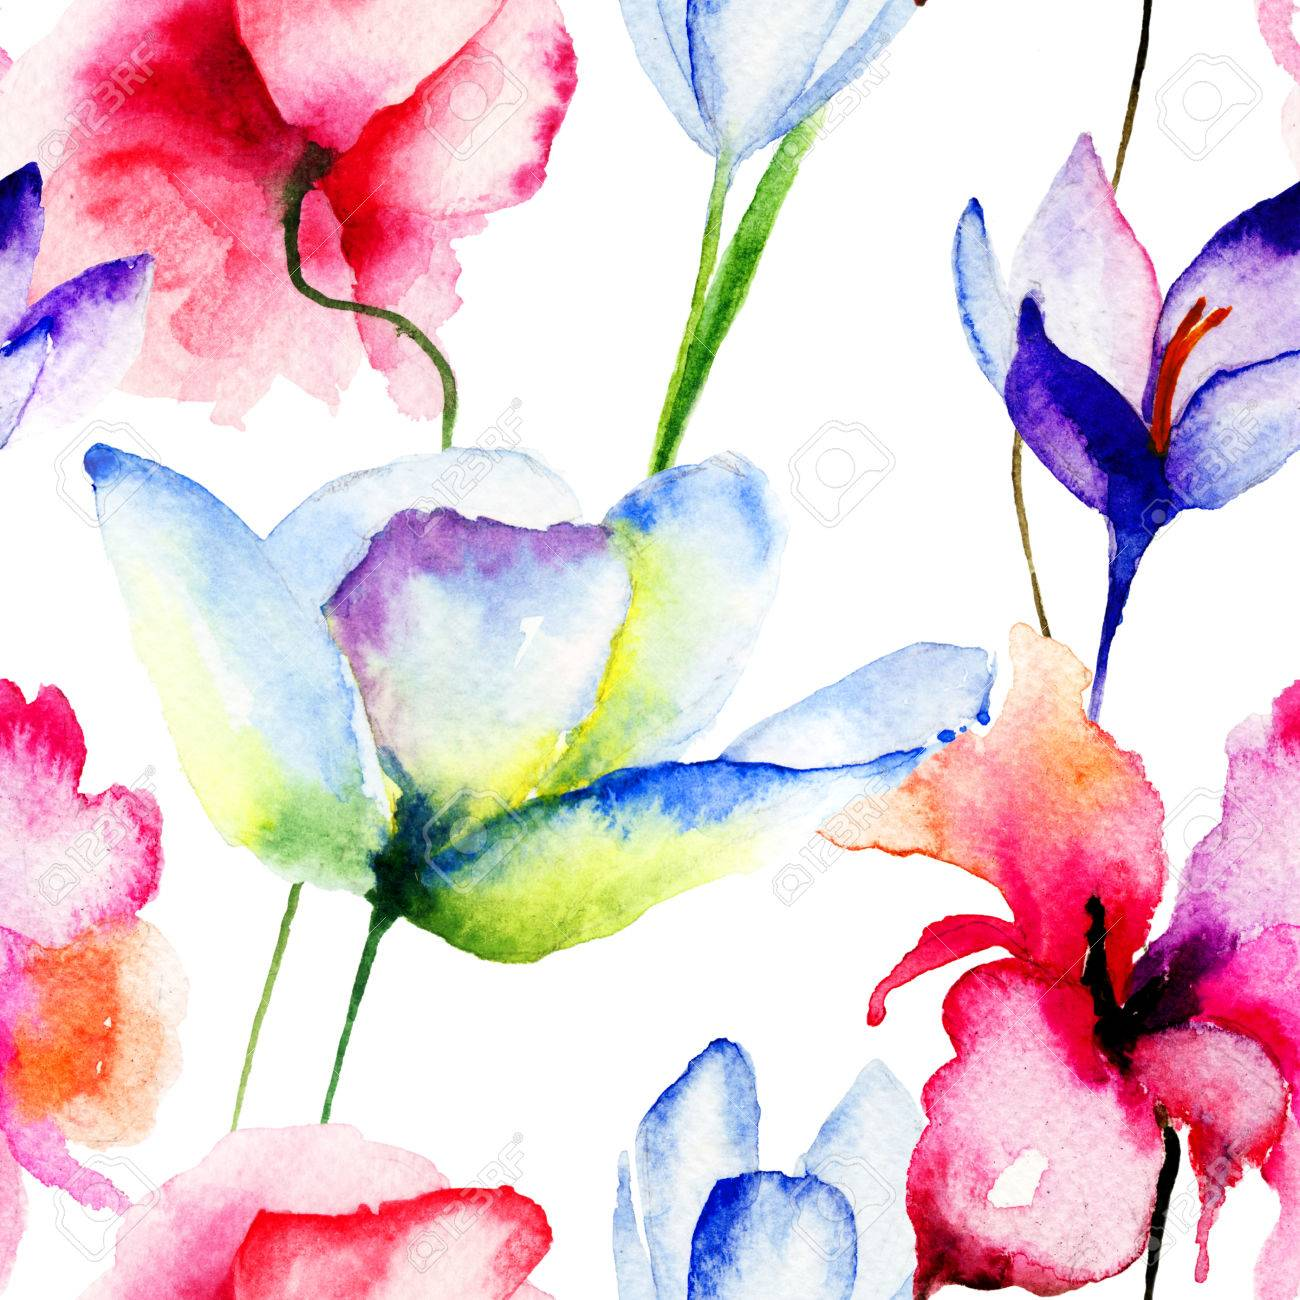 Seamless Wallpaper With Spring Flowers Watercolor Illustration